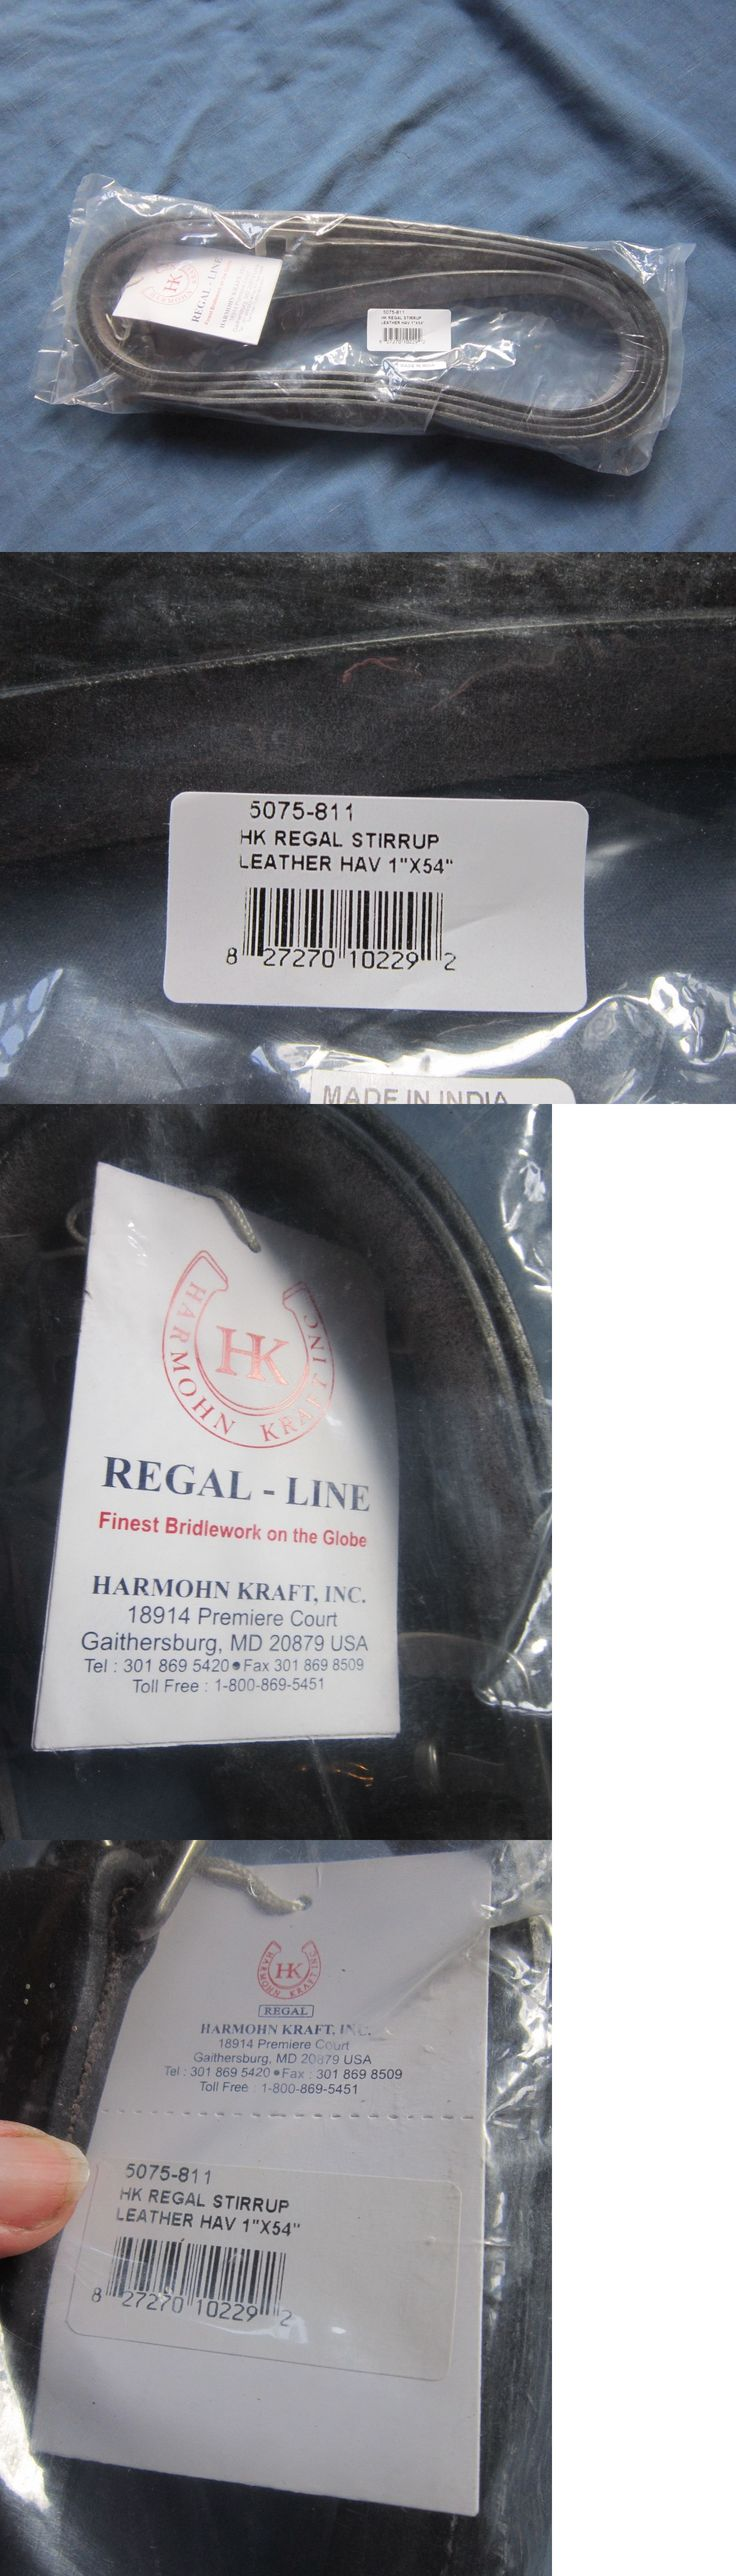 Stirrup Leathers 183380: 54 X 1 Havana Brown Stirrup Leathers Harmohn Kraft Regal-Line New In Bag BUY IT NOW ONLY: $48.0